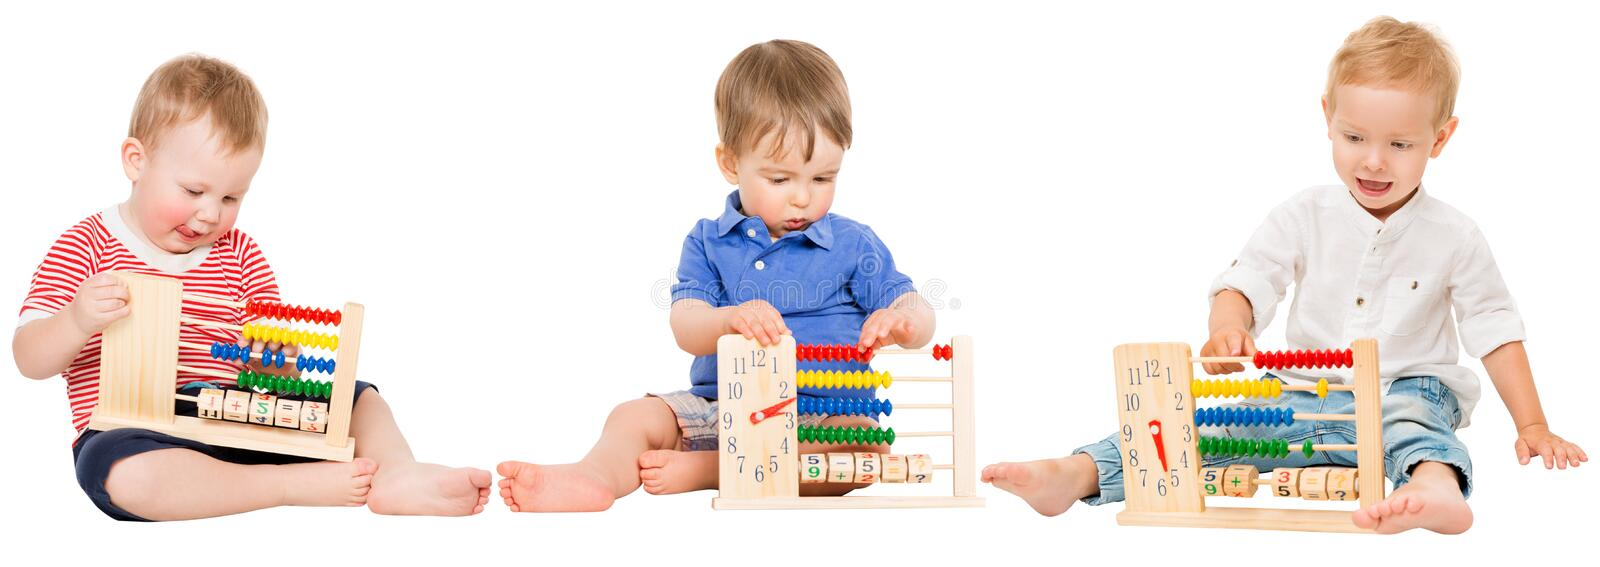 Baby Education, Children Playing Abacus, Kids Learning Math stock photos